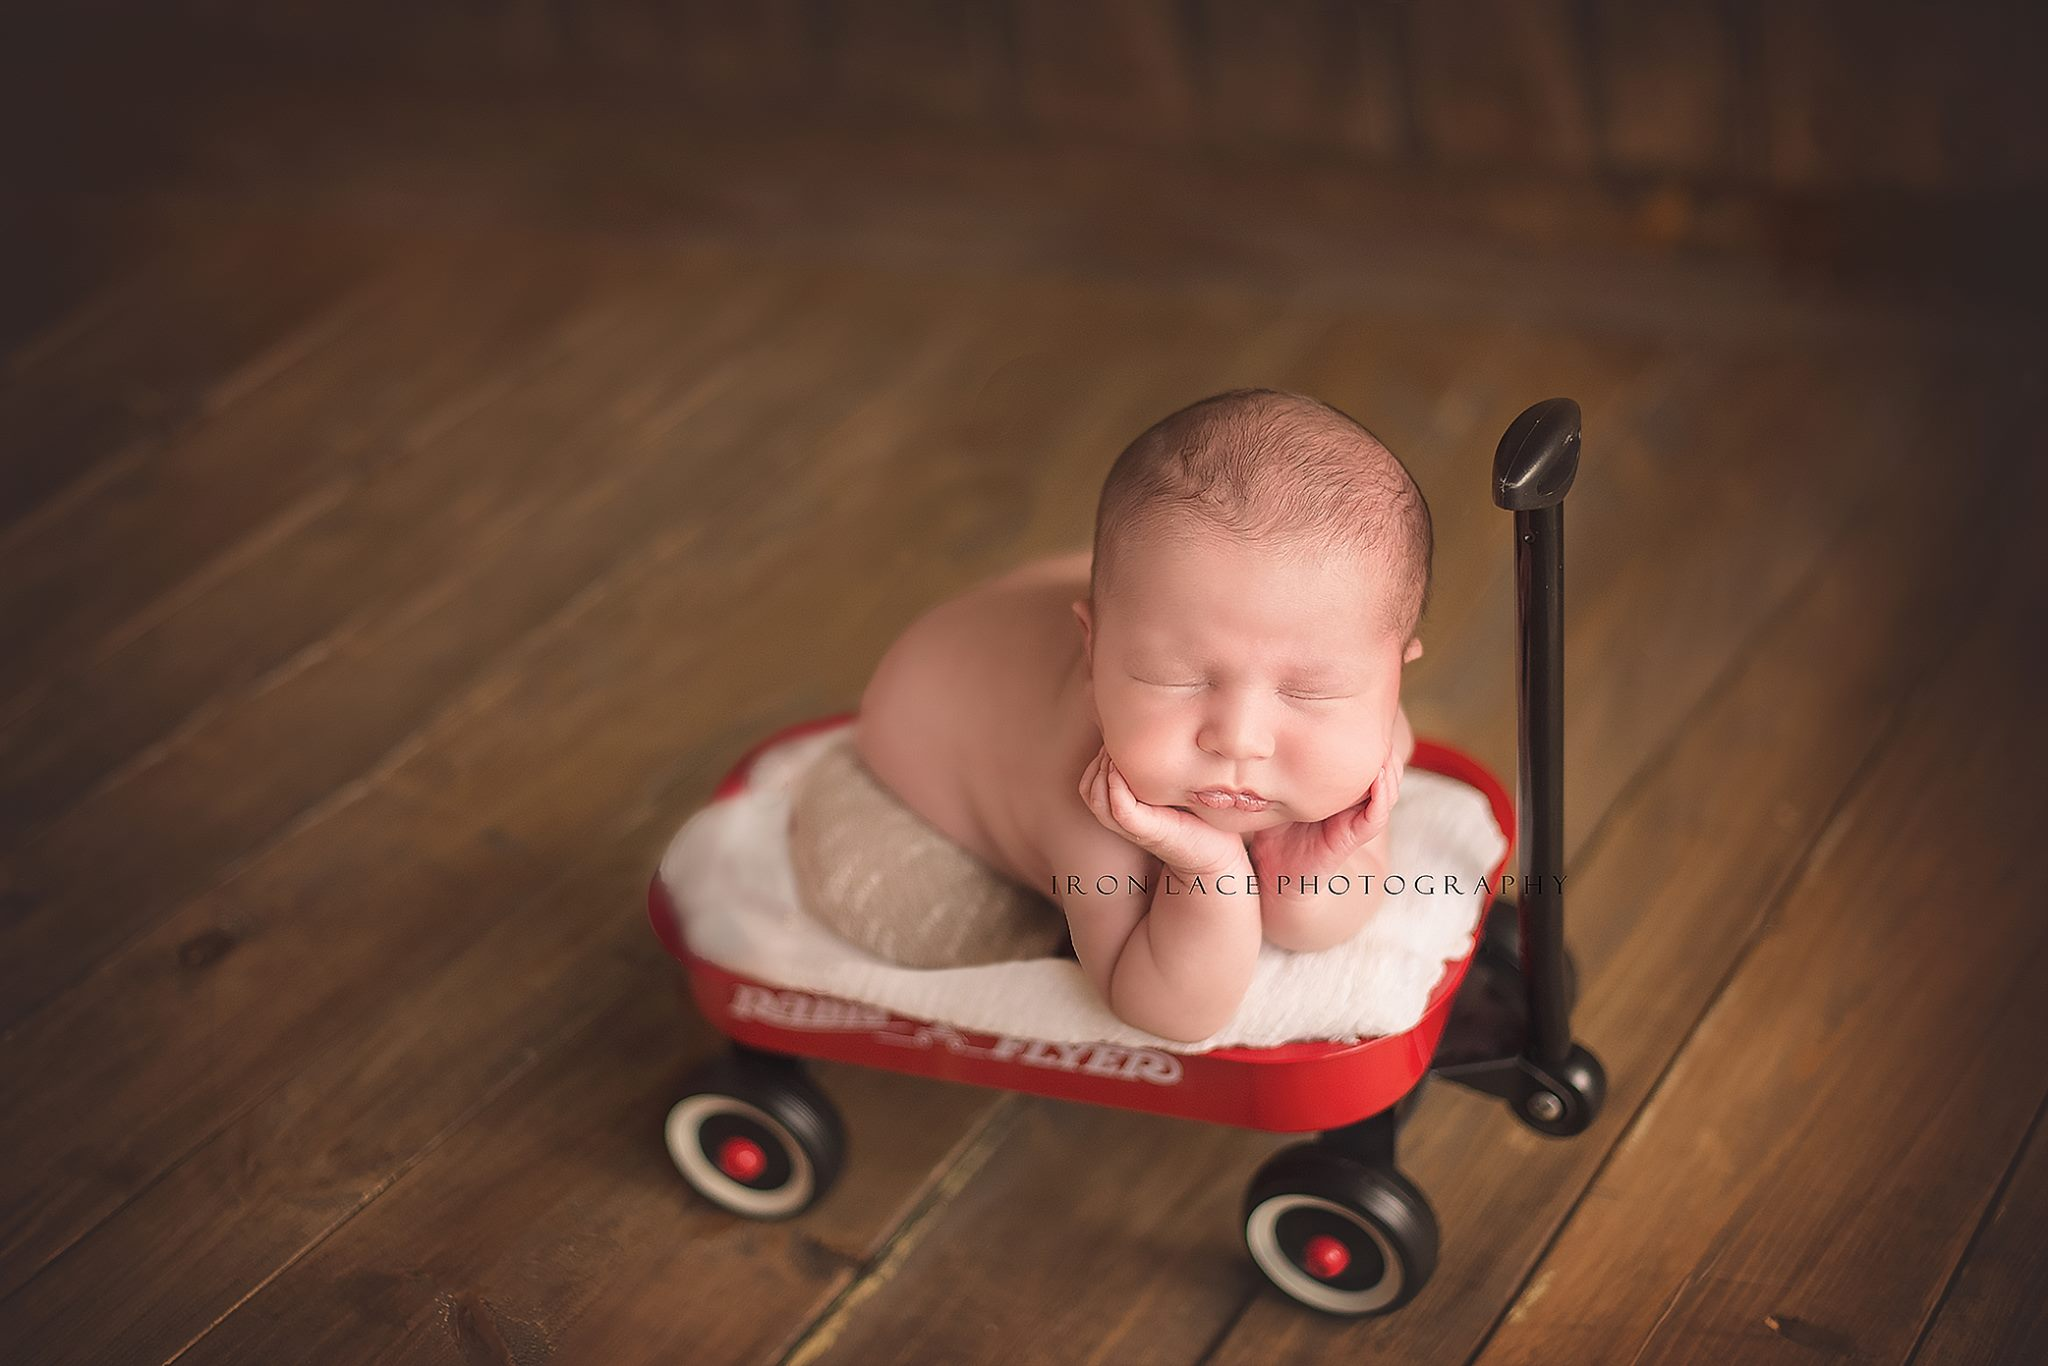 Newborn Session by Iron Lace Photography